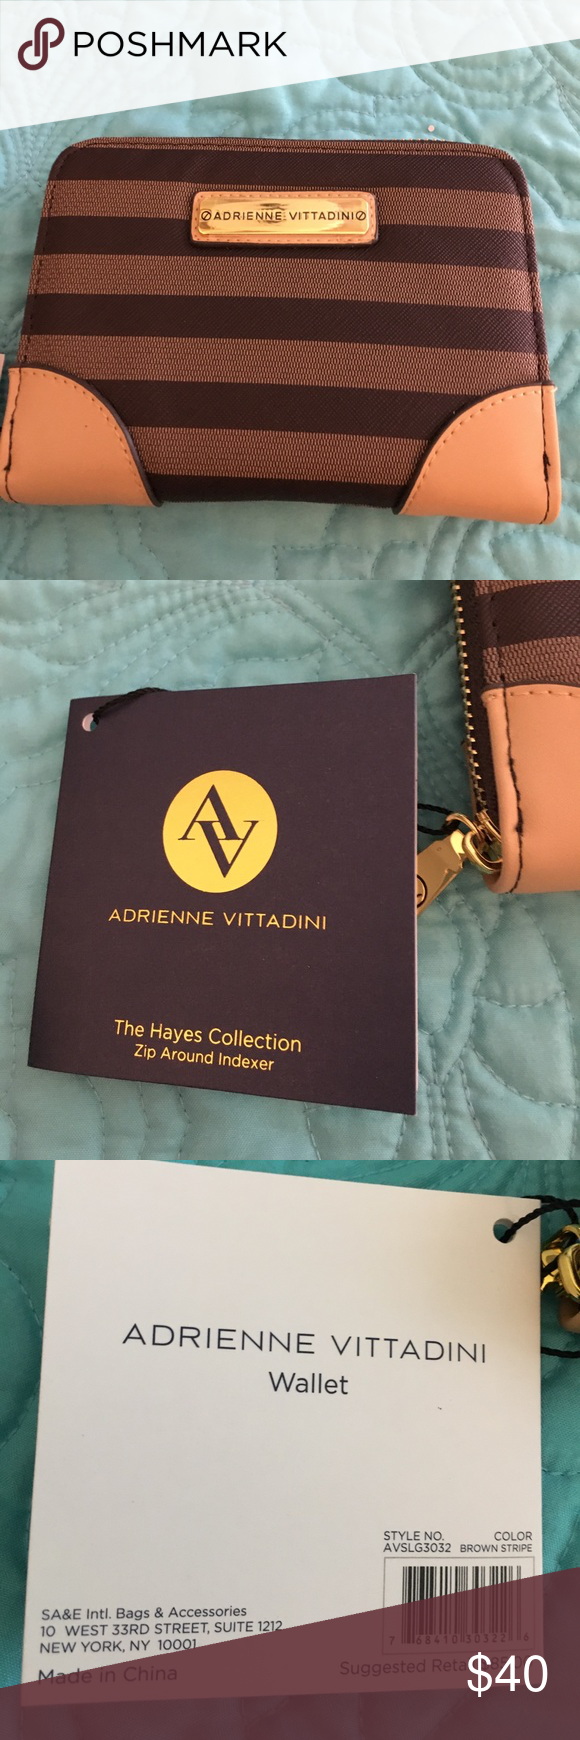 NWT Adrienne Vittadini Hayes Collection Wallet   Wallet, Adrienne ...